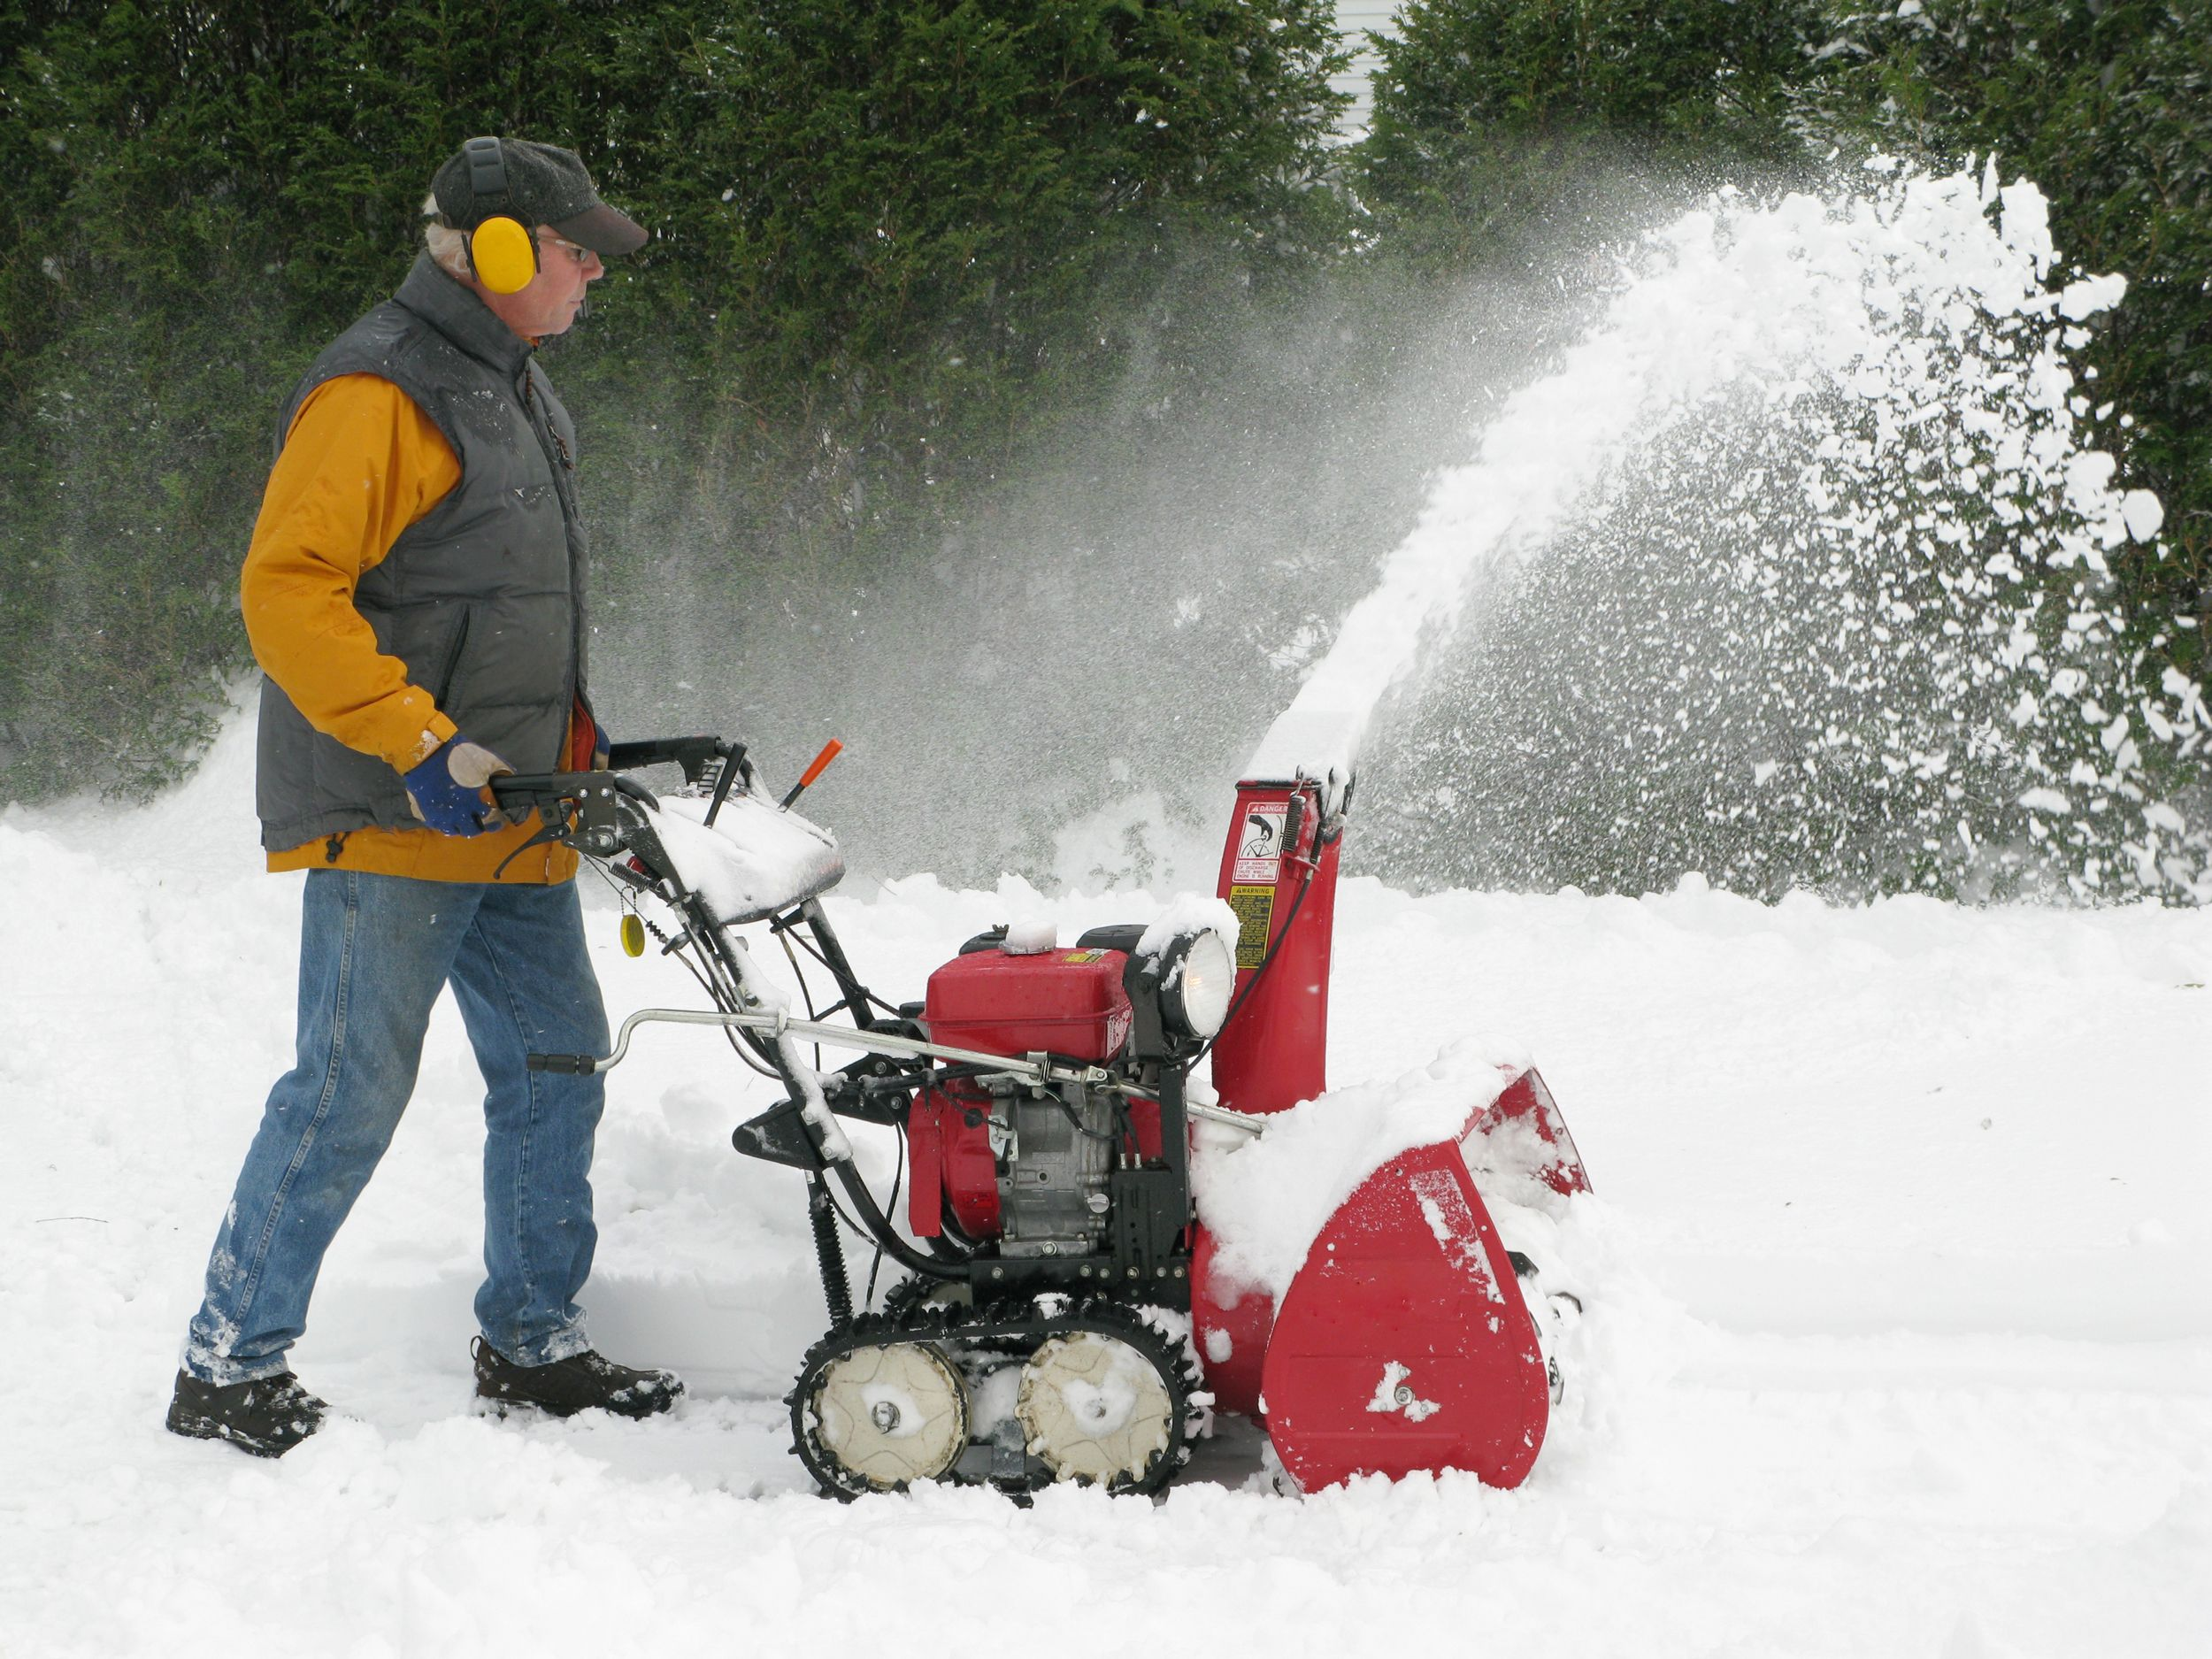 "<p>You don't always see those blades moving because they are covered in snow, but they are there and they are sharp. Always keep hands and clothes far away from any moving parts on a snow thrower.</p><p><a href=""http://www.popularmechanics.com/home/tools/reviews/a9939/so-you-have-a-snow-thrower-heres-what-else-you-need-16365732/"">How to Use a Snow Thrower</a></p>"